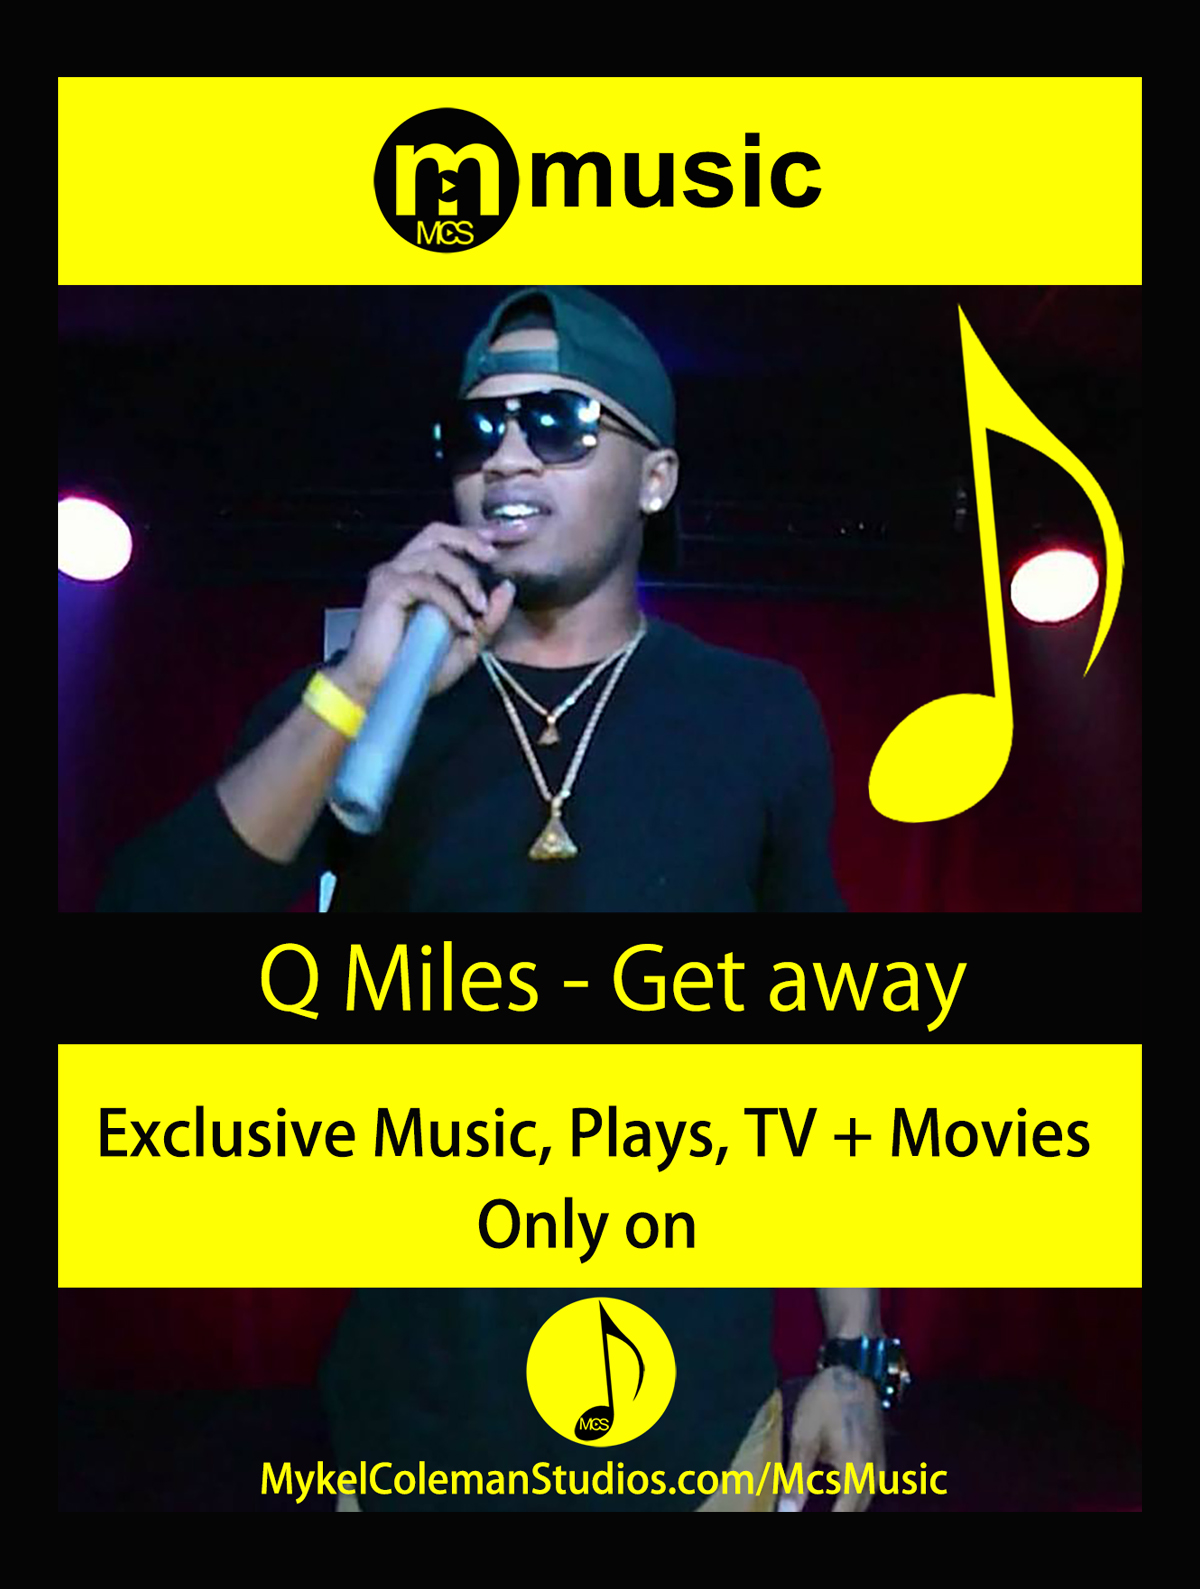 QMiles MCS Music Billboard